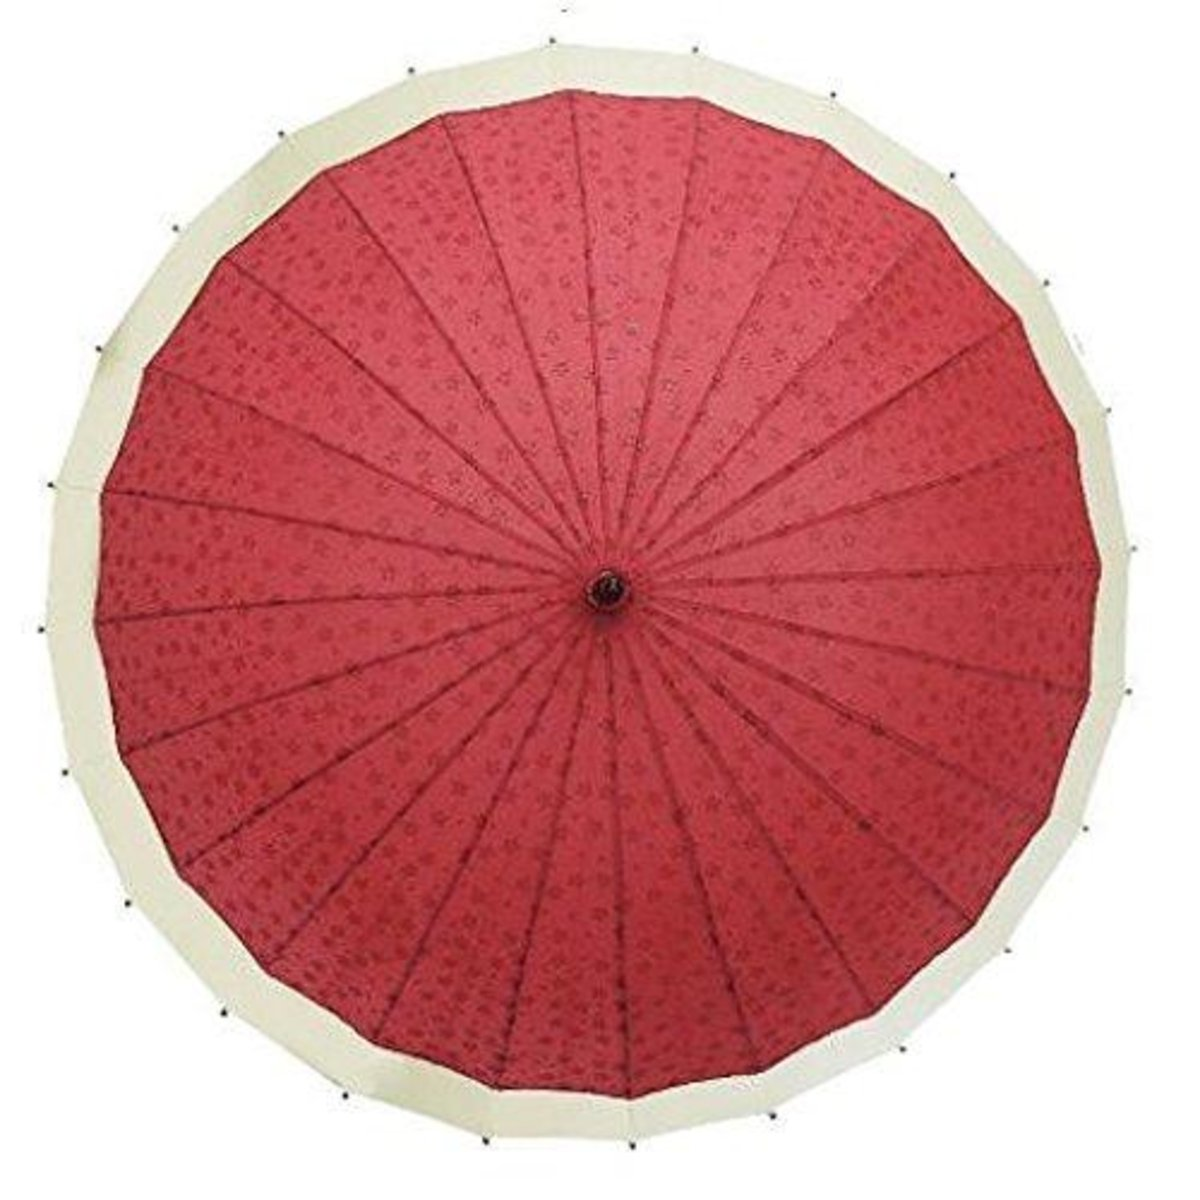 Traditional Japanese Umbrella With Water MAGIC - Red (Parallel Import Product)